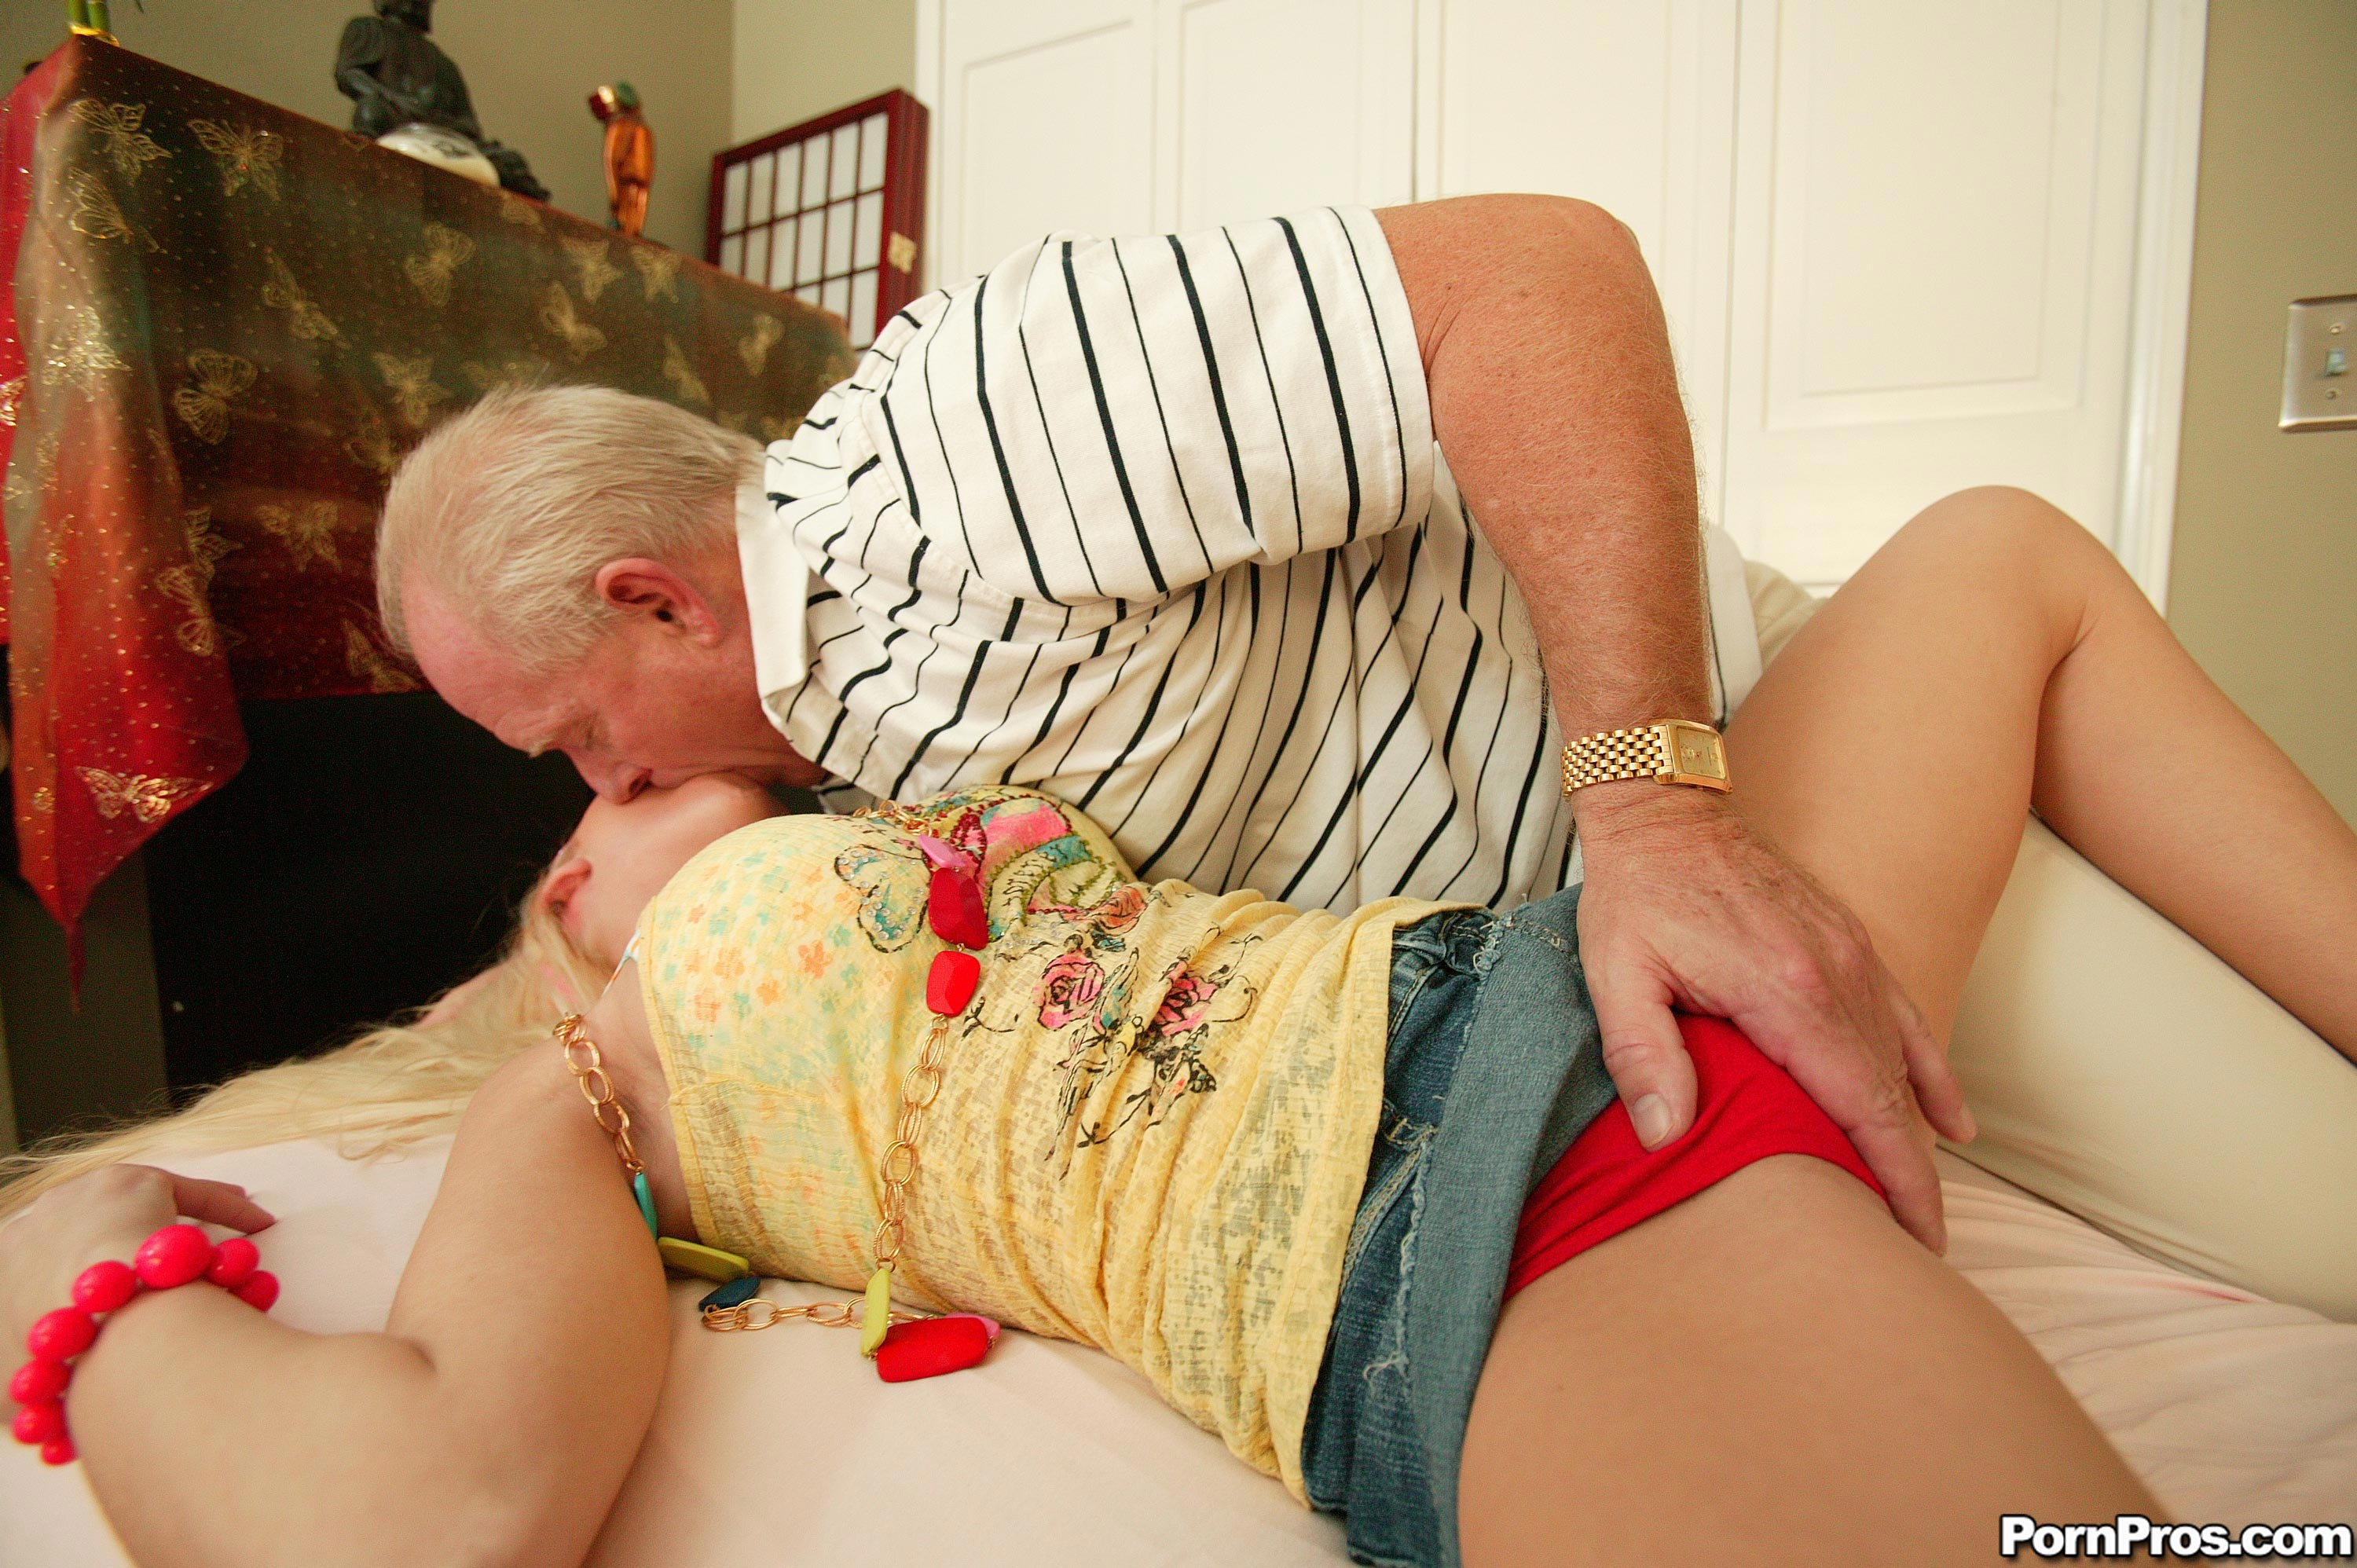 Ally ann old and friend039s step daughter old 6